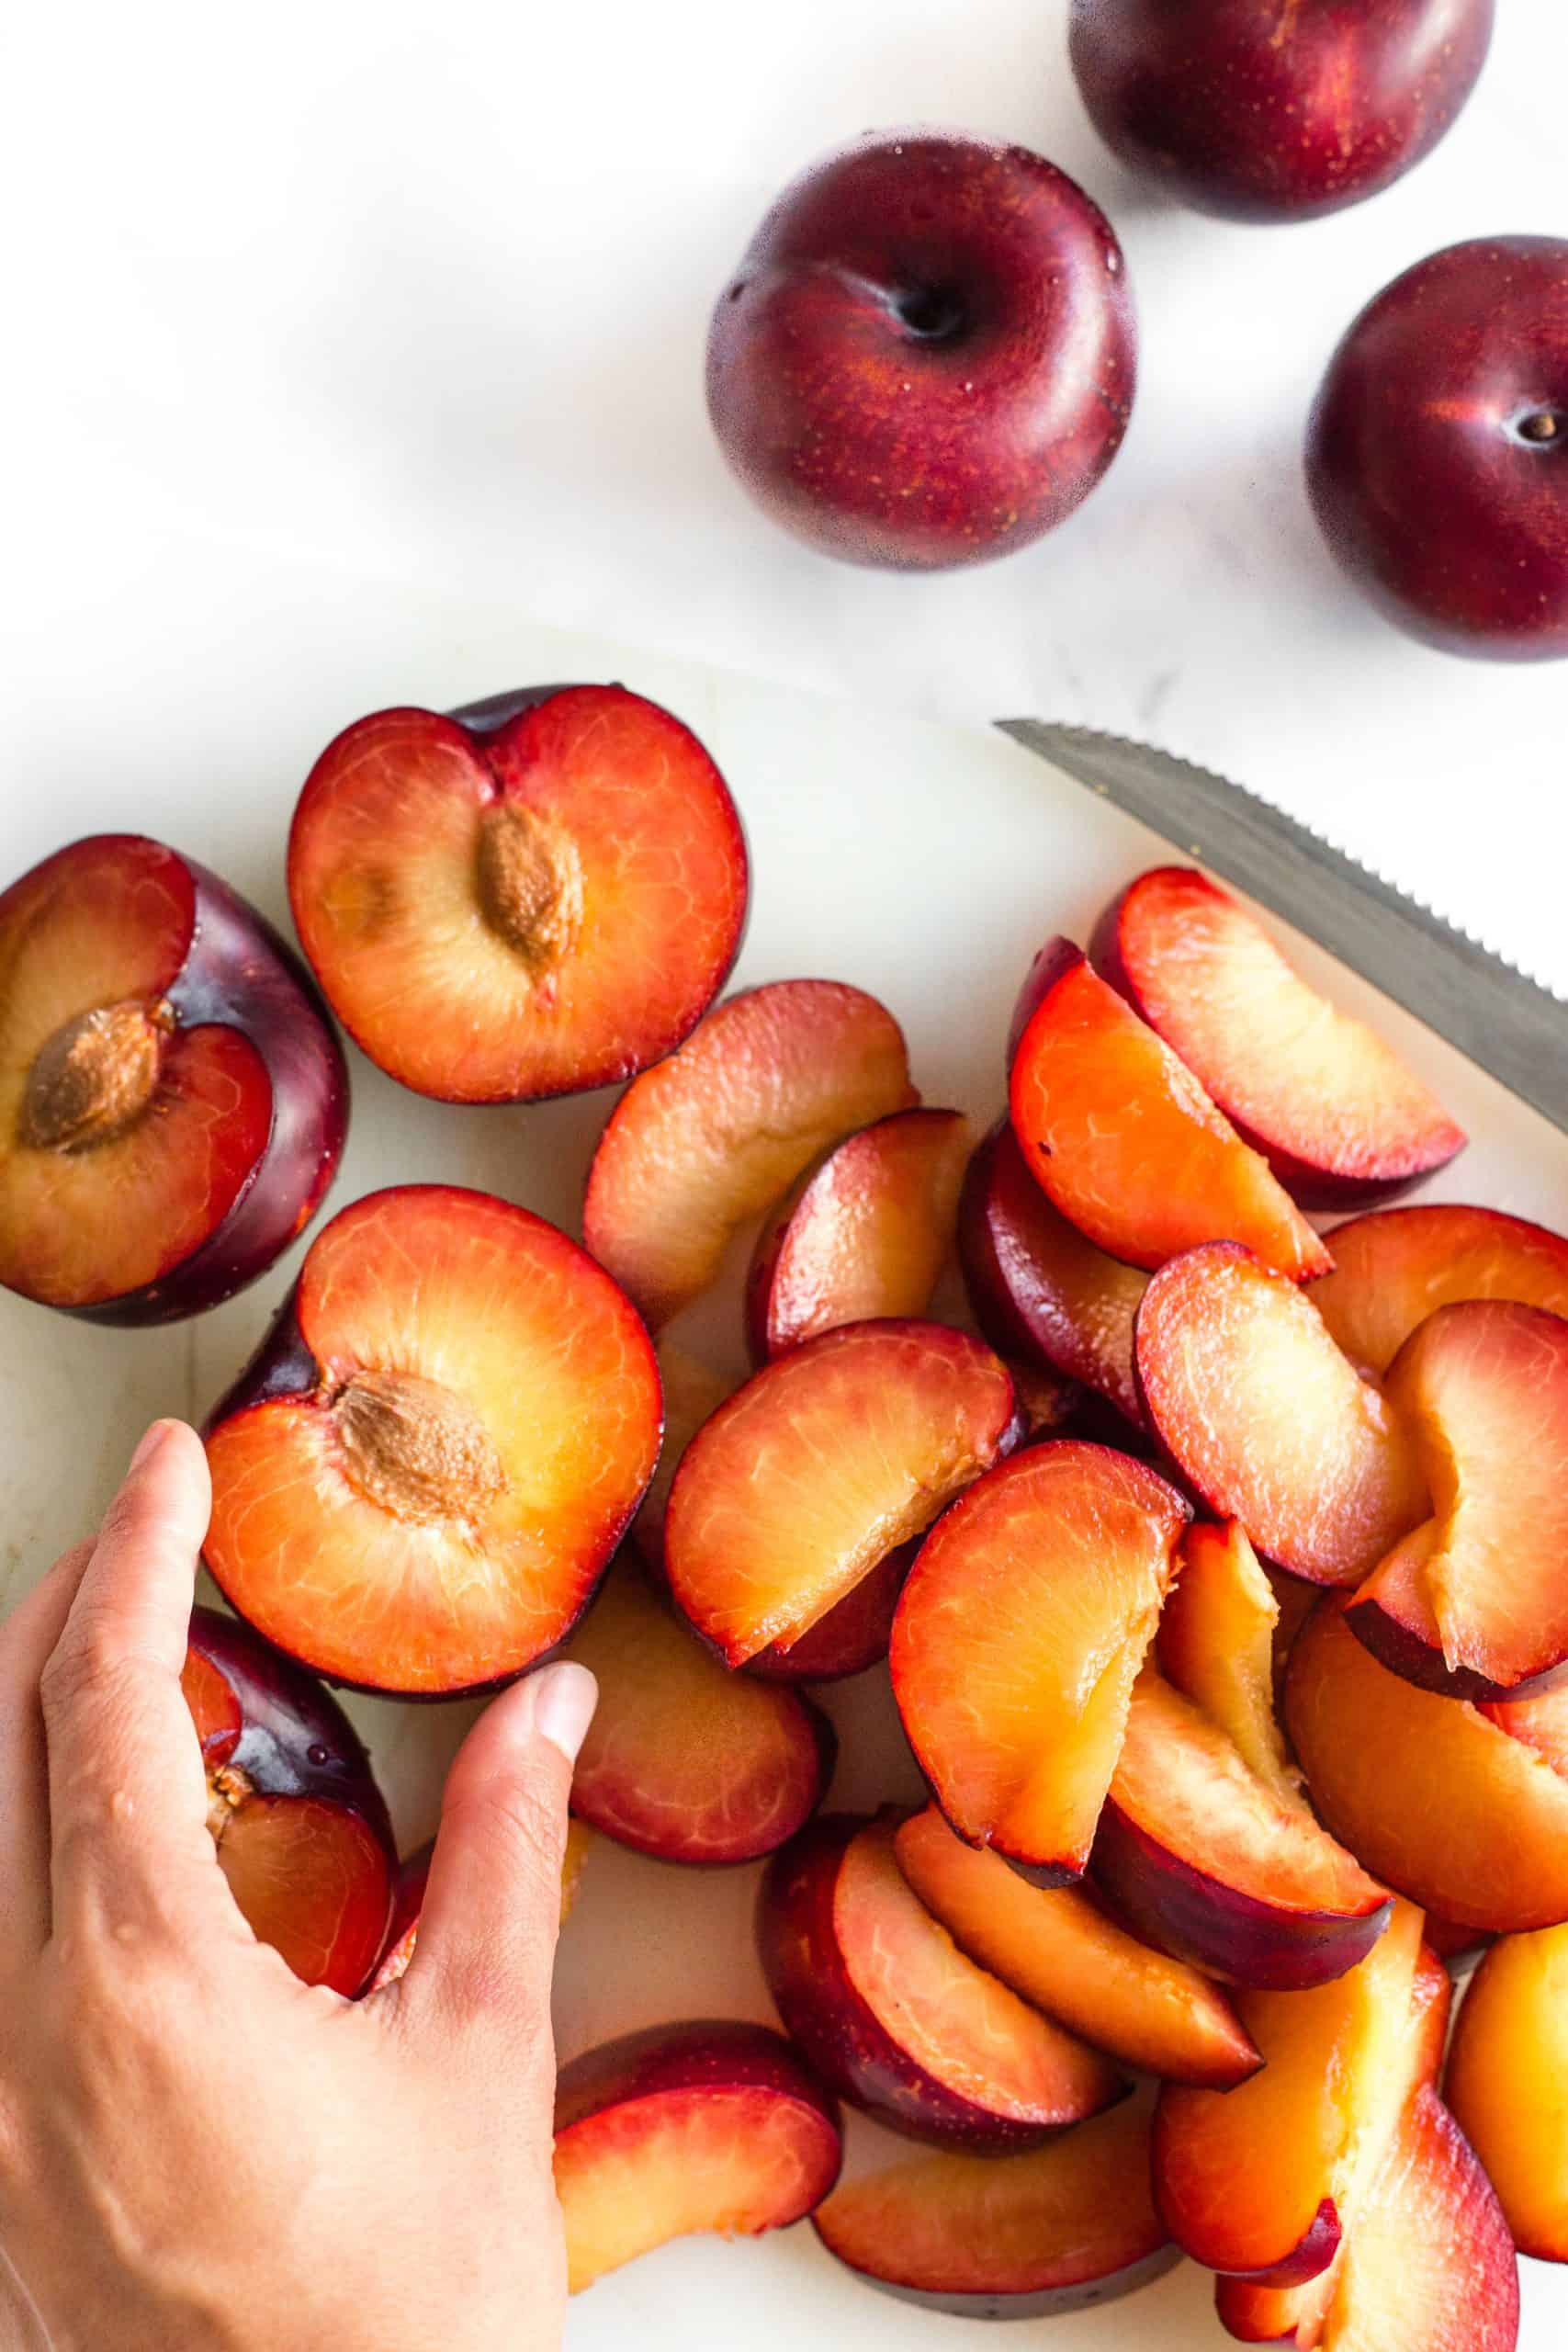 Sliced plums on a chopping board.